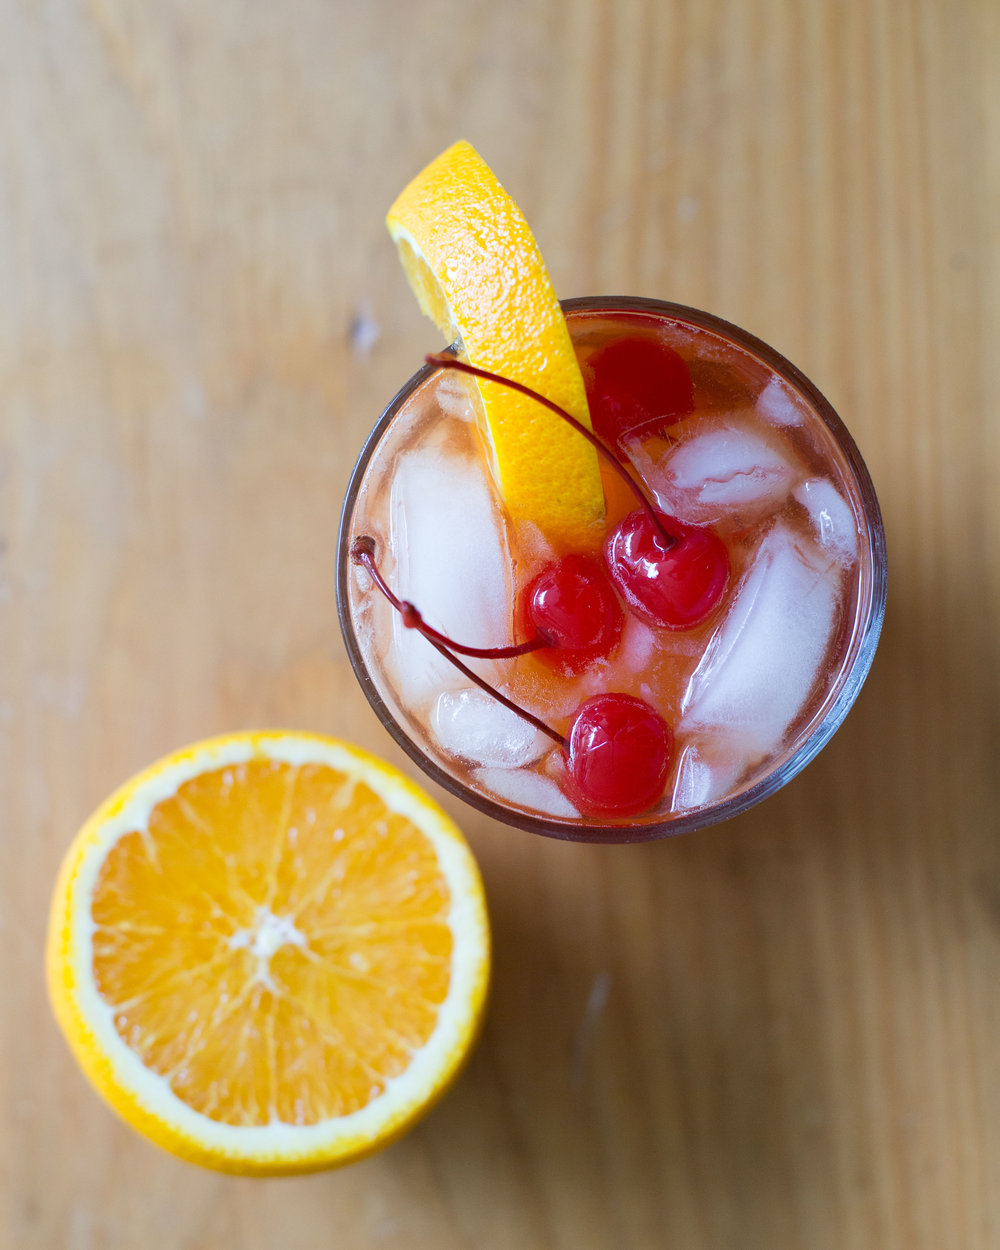 A classic recipe for the perfect Old Fashioned, constructed lovingly by my father.